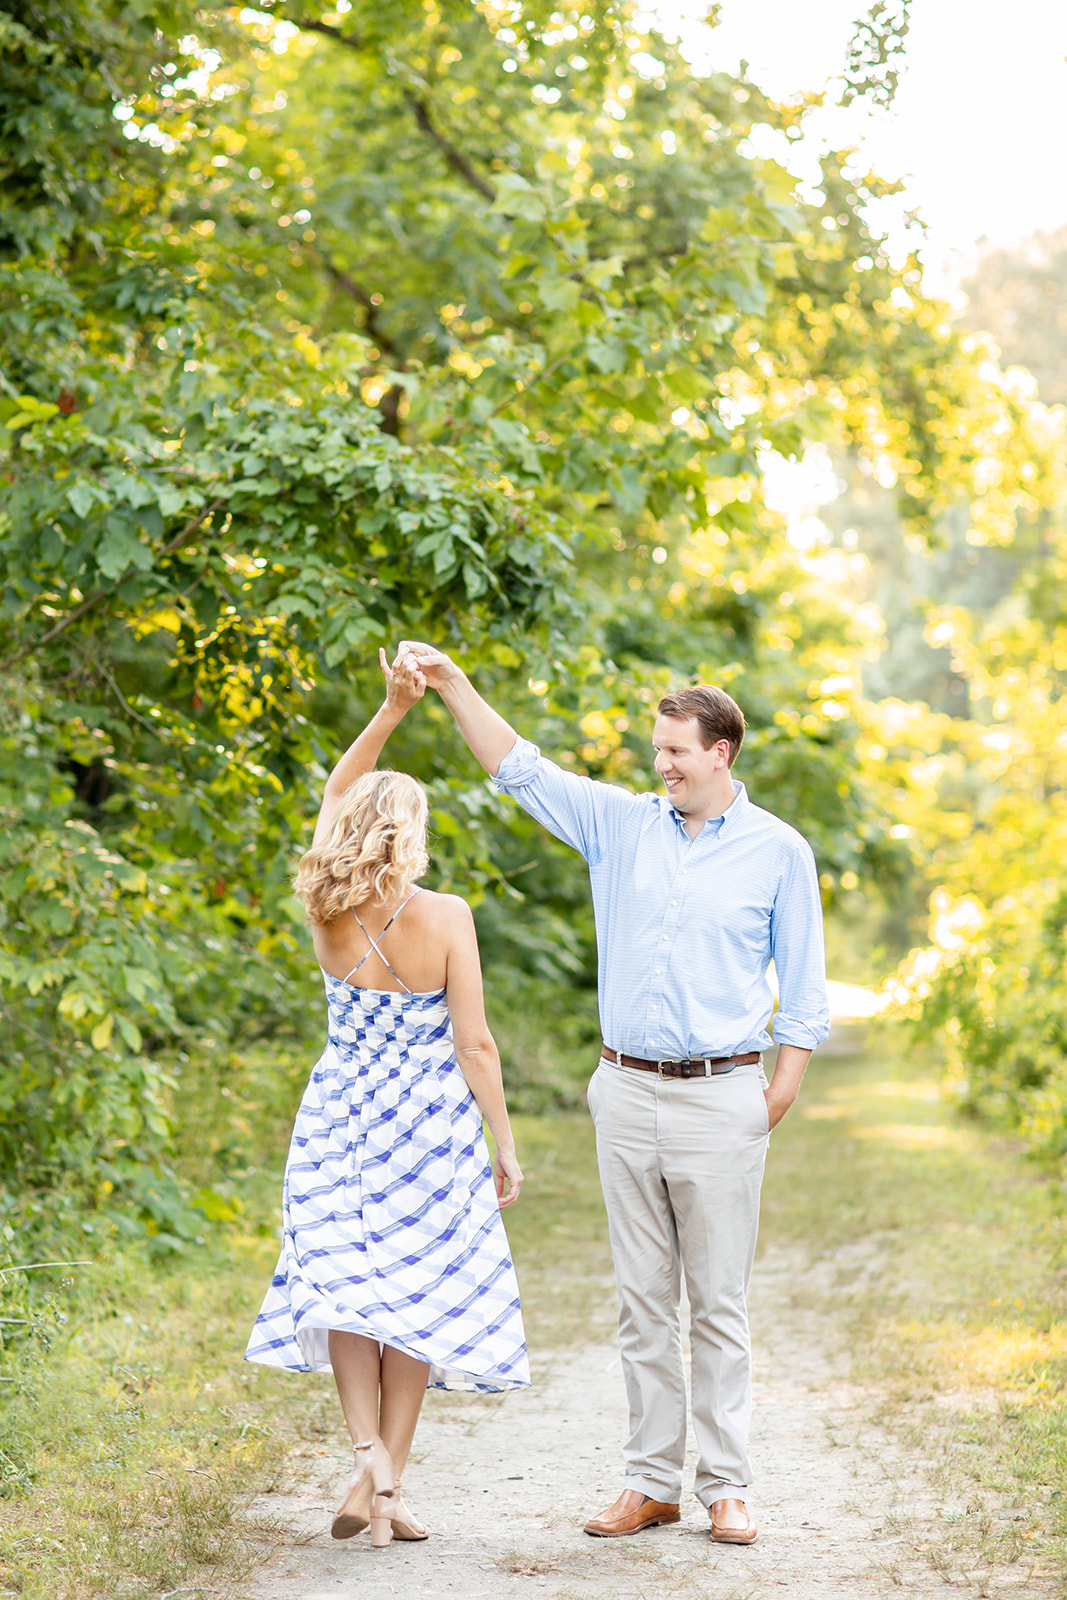 Abby  Matts Engagement Session at Pumphouse Park and The Fan - Image Property of www.j-dphoto.com